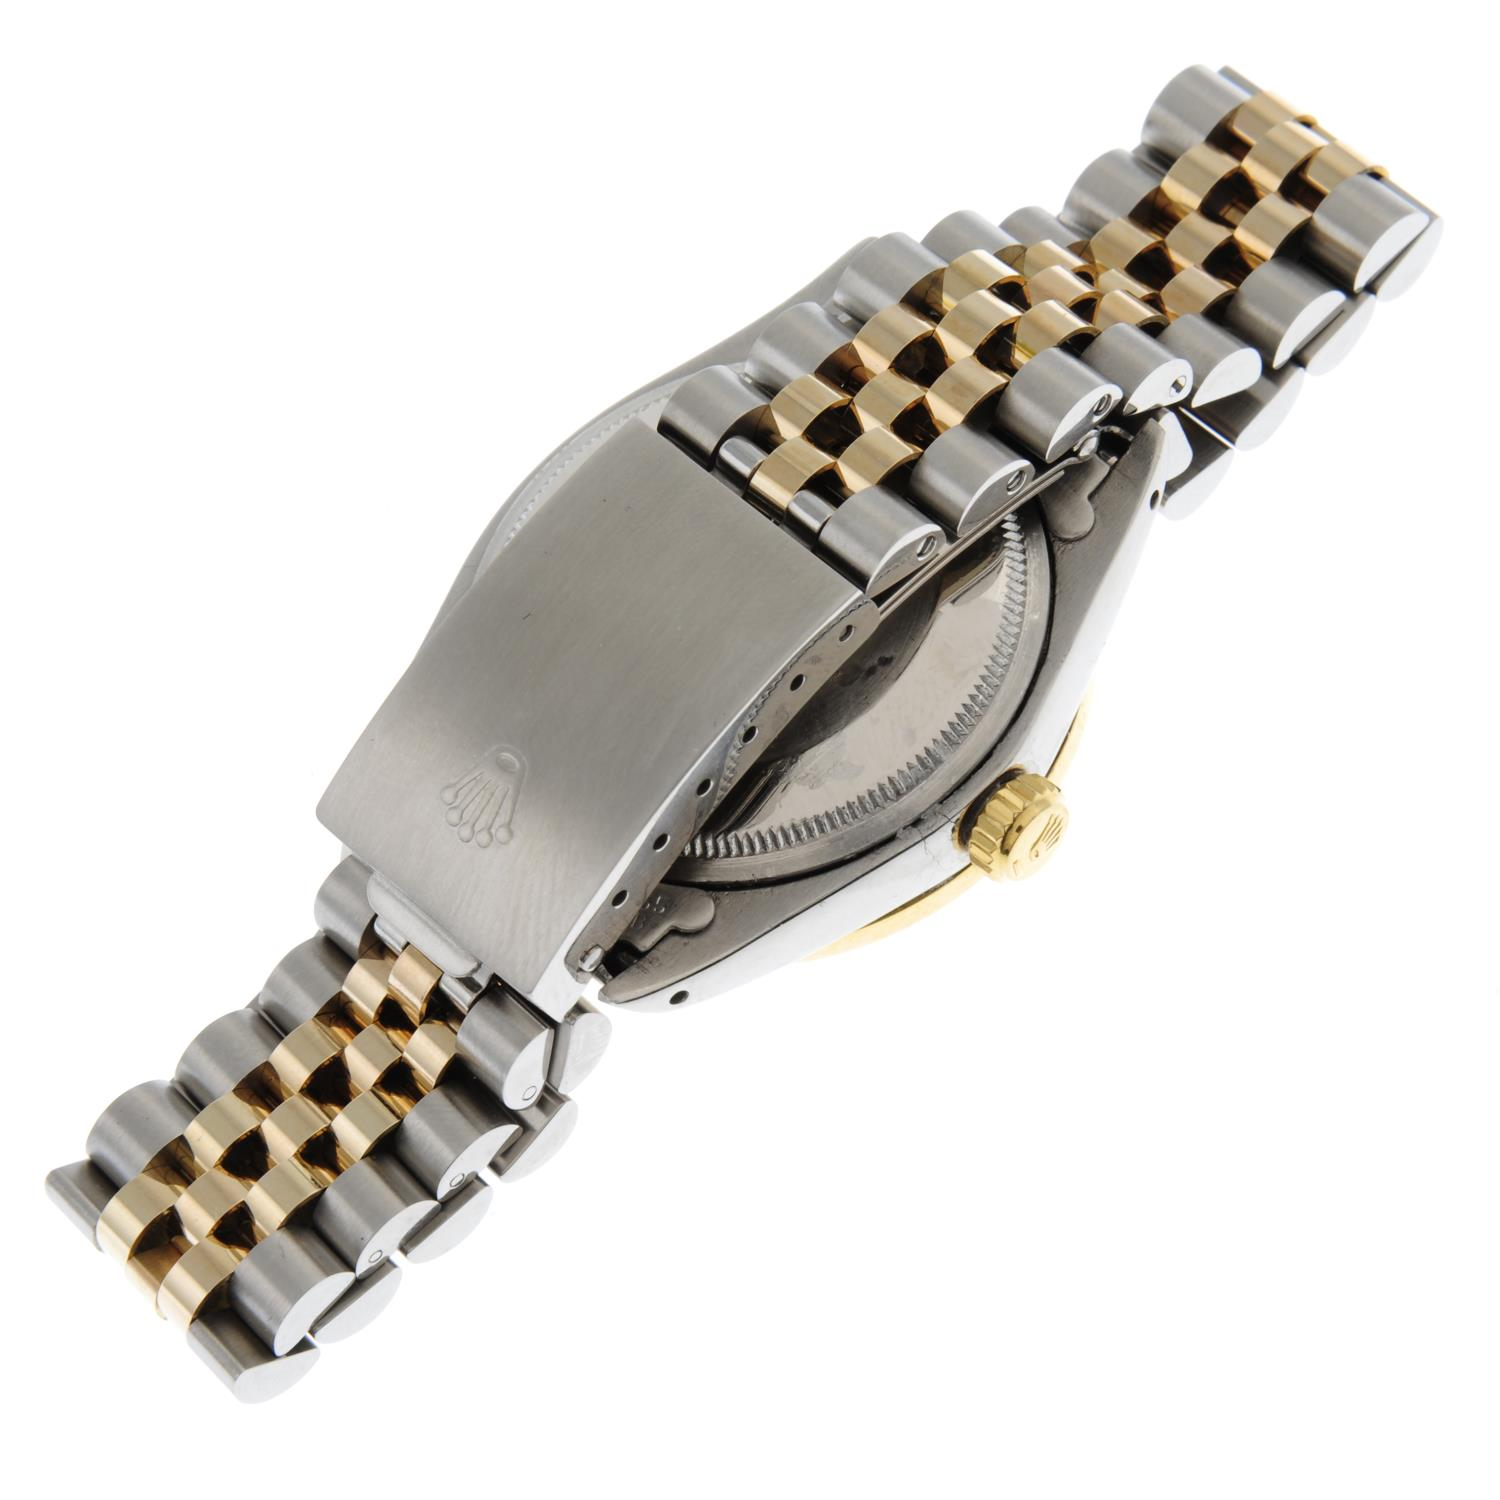 ROLEX - an Oyster Perpetual Date bracelet watch. - Image 4 of 5